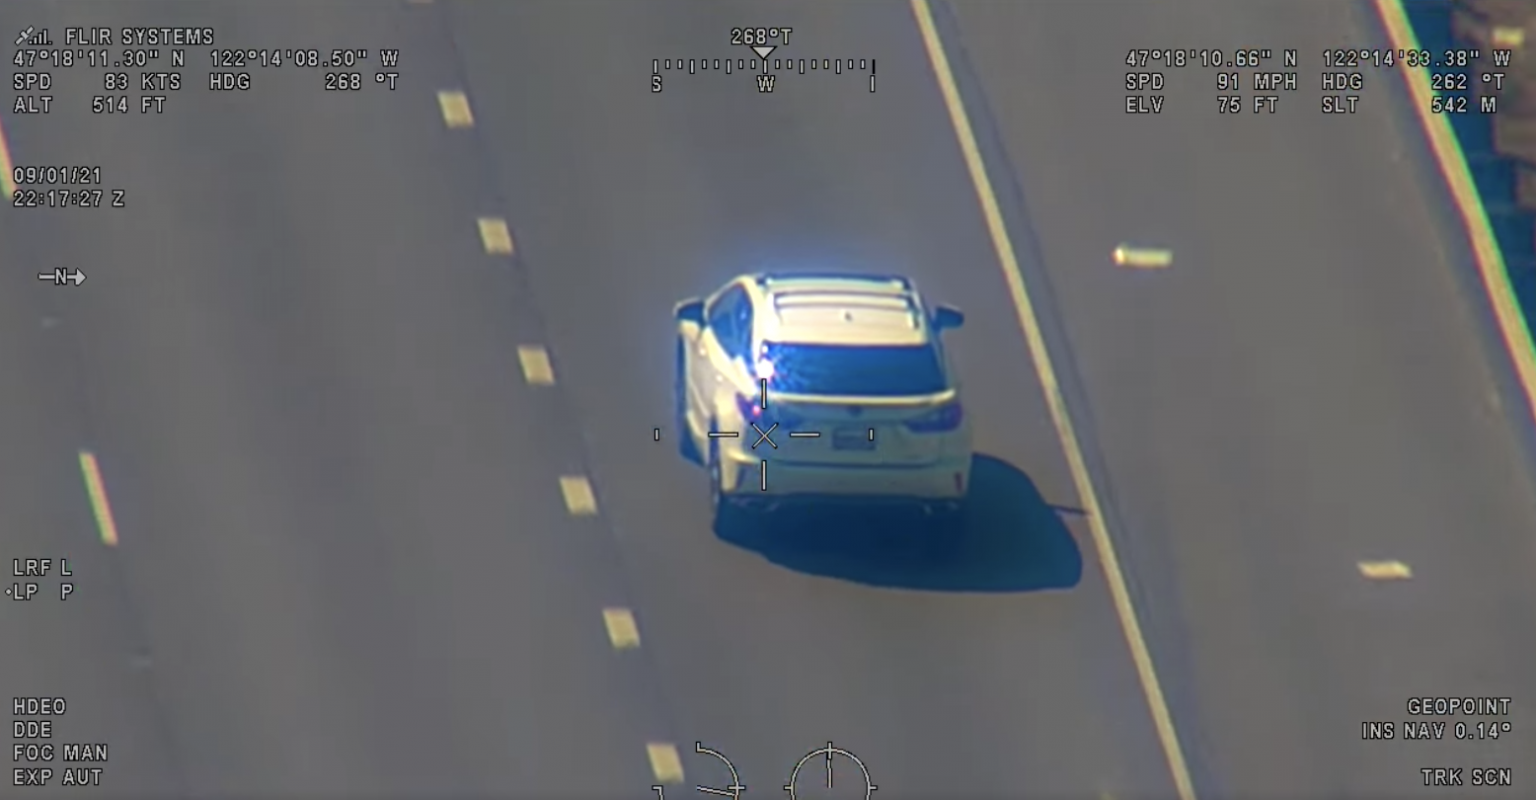 Watch: Police don't chase stolen vehicle, let criminal get away thanks to new police reform laws